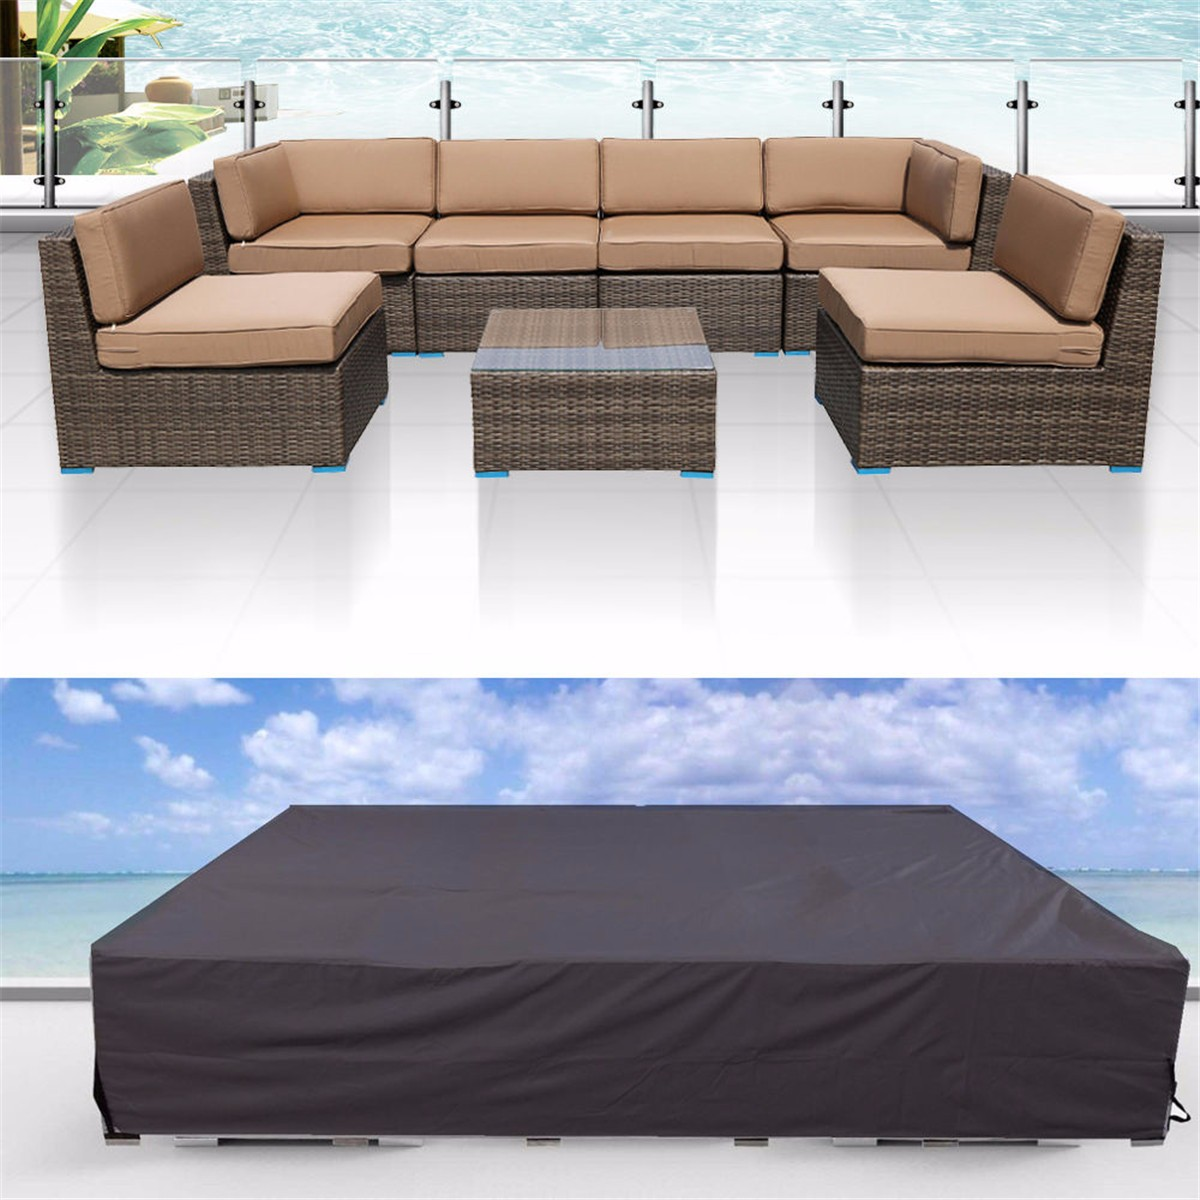 2 size black polyester pvc waterproof sofa couch table for Balkon sofa